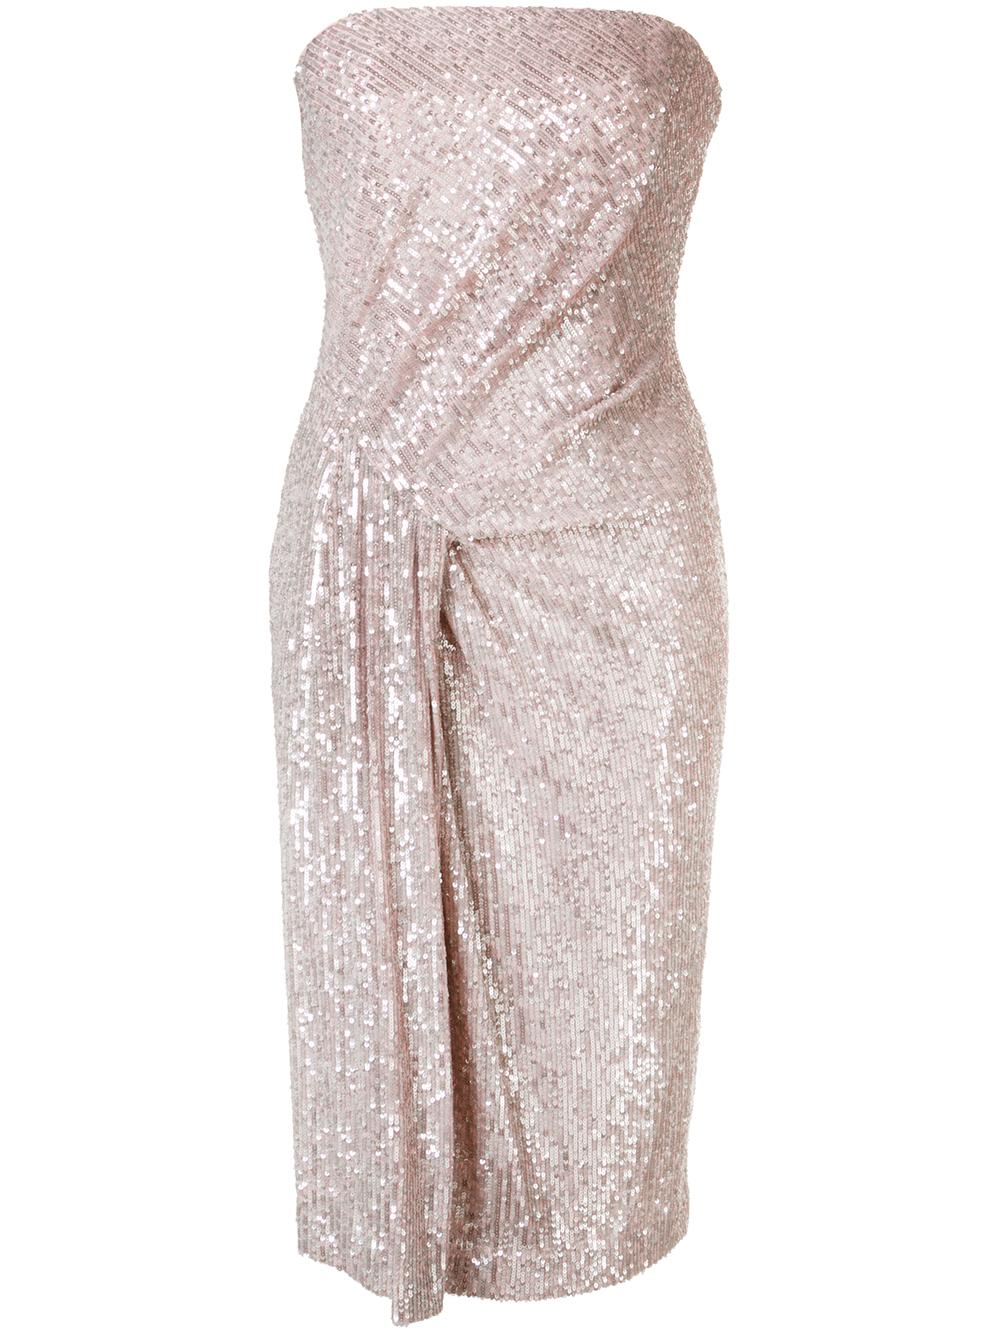 Domino Sequin Cocktail Dress